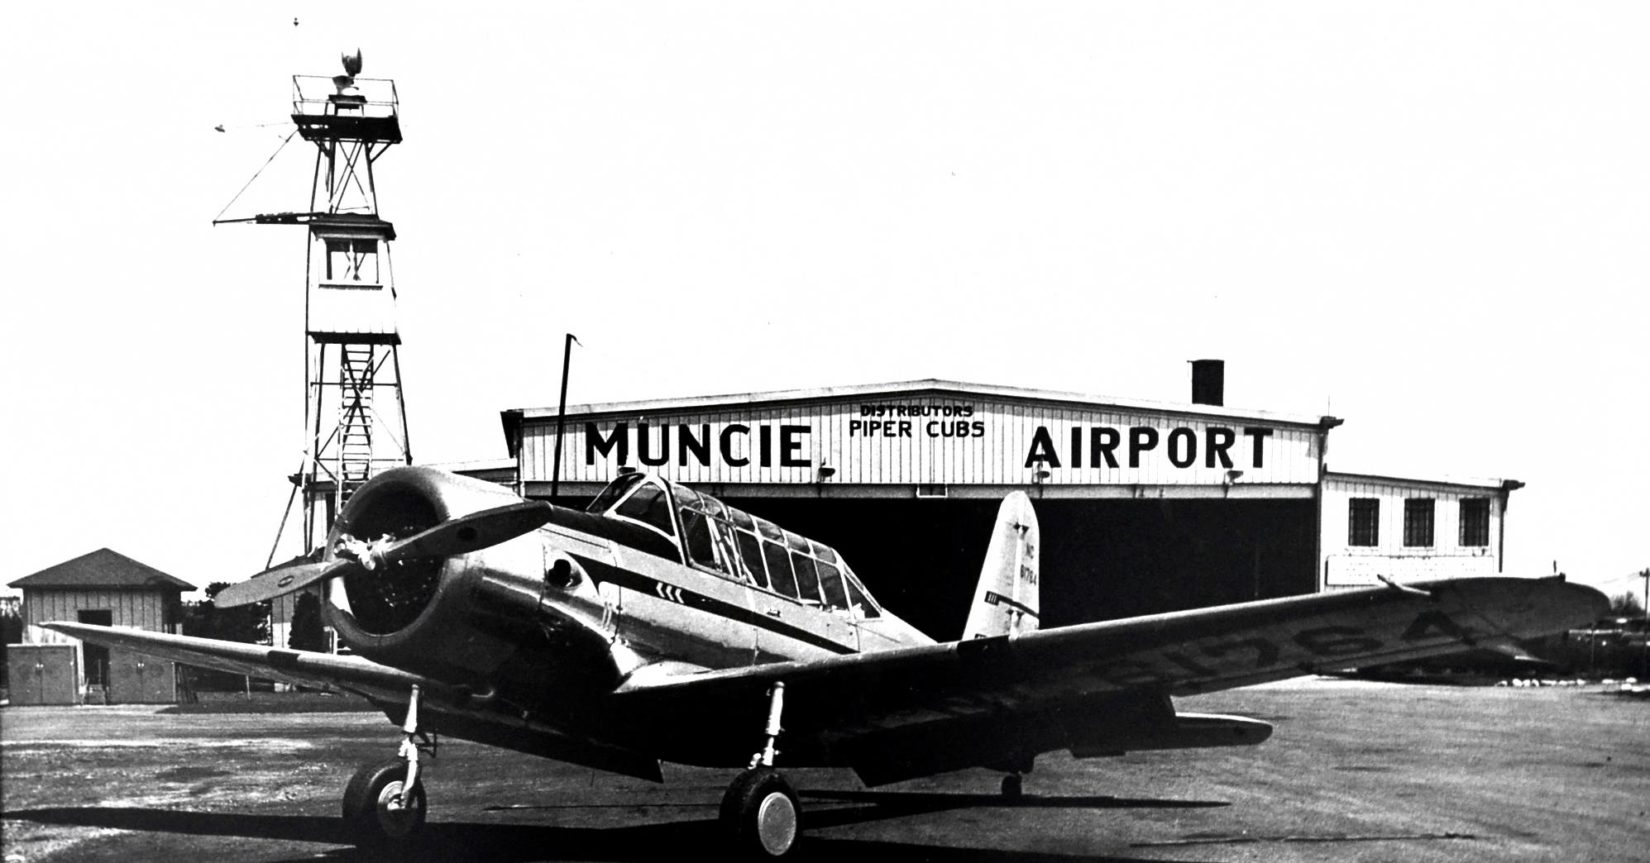 Historical photo of an aircraft in front of a Muncie hangar